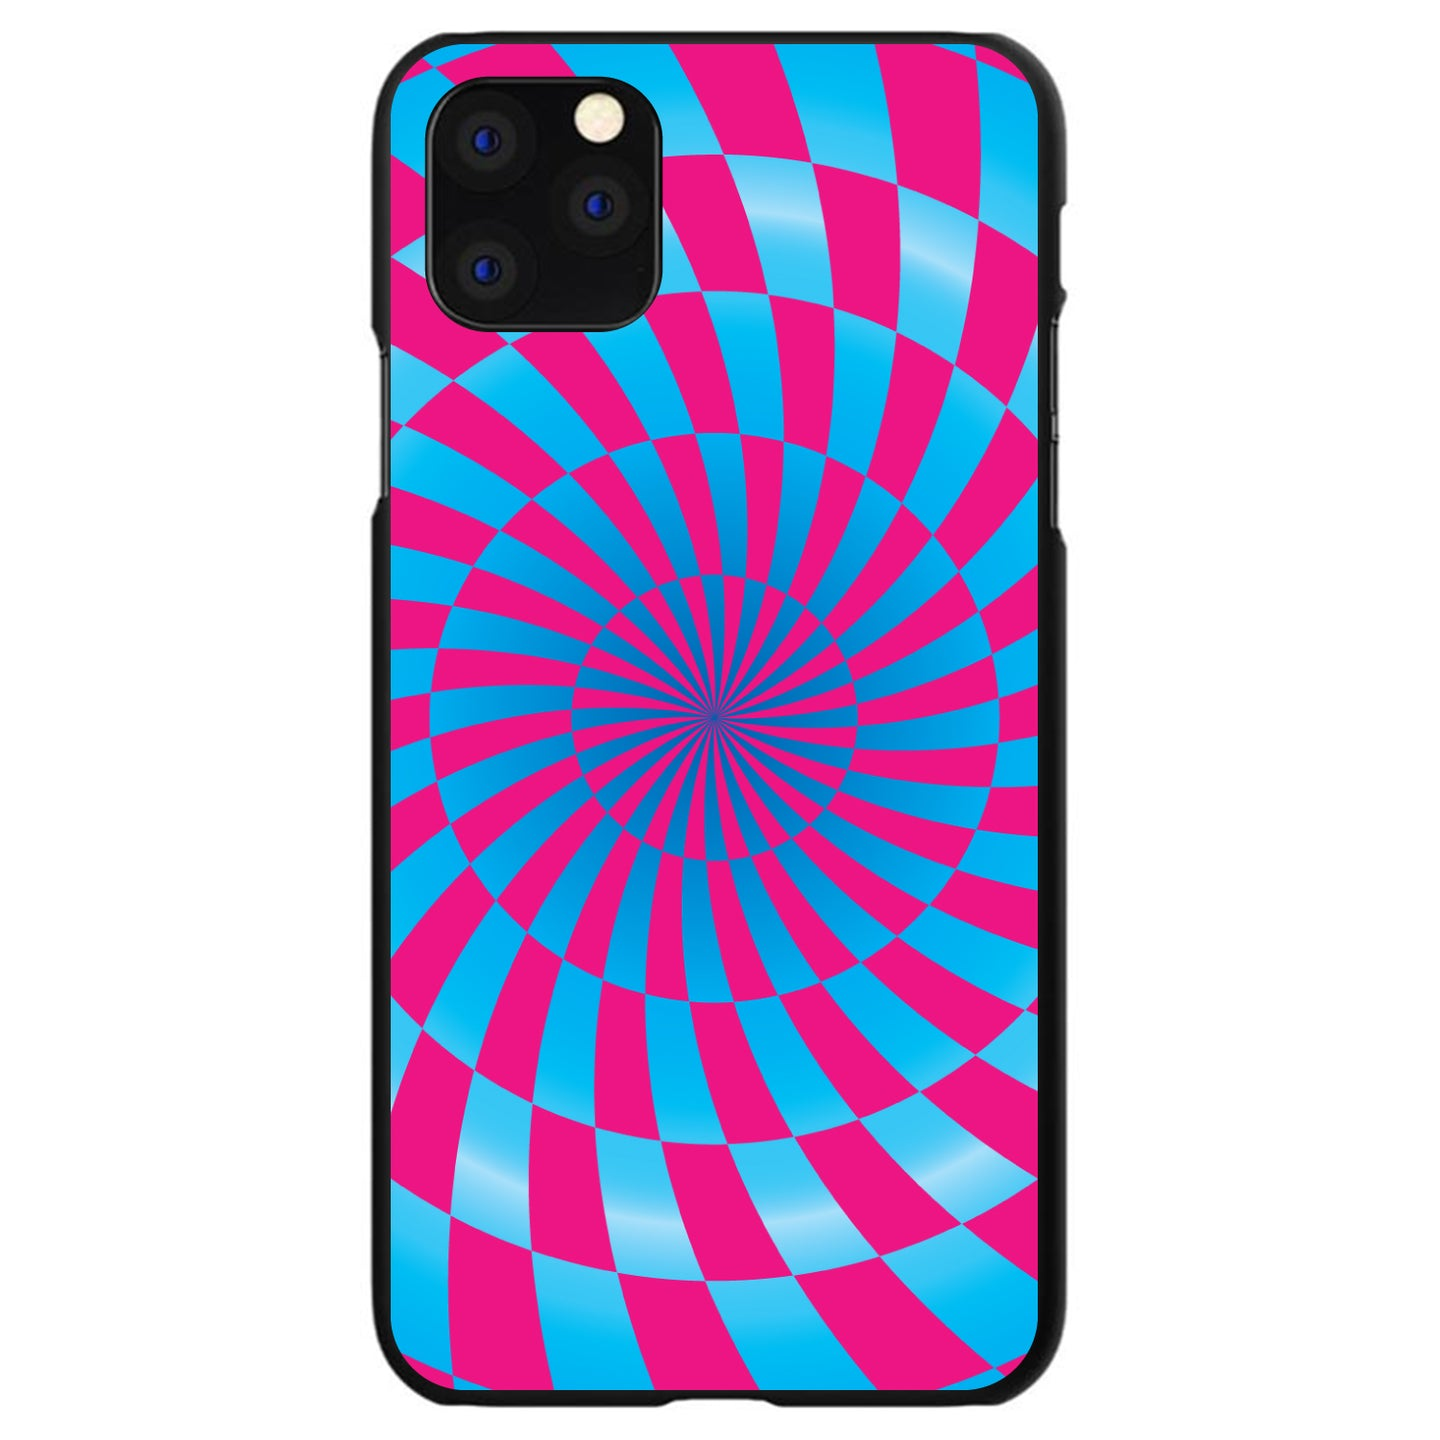 DistinctInk® Hard Plastic Snap-On Case for Apple iPhone - Blue Pink Swirl Geometric